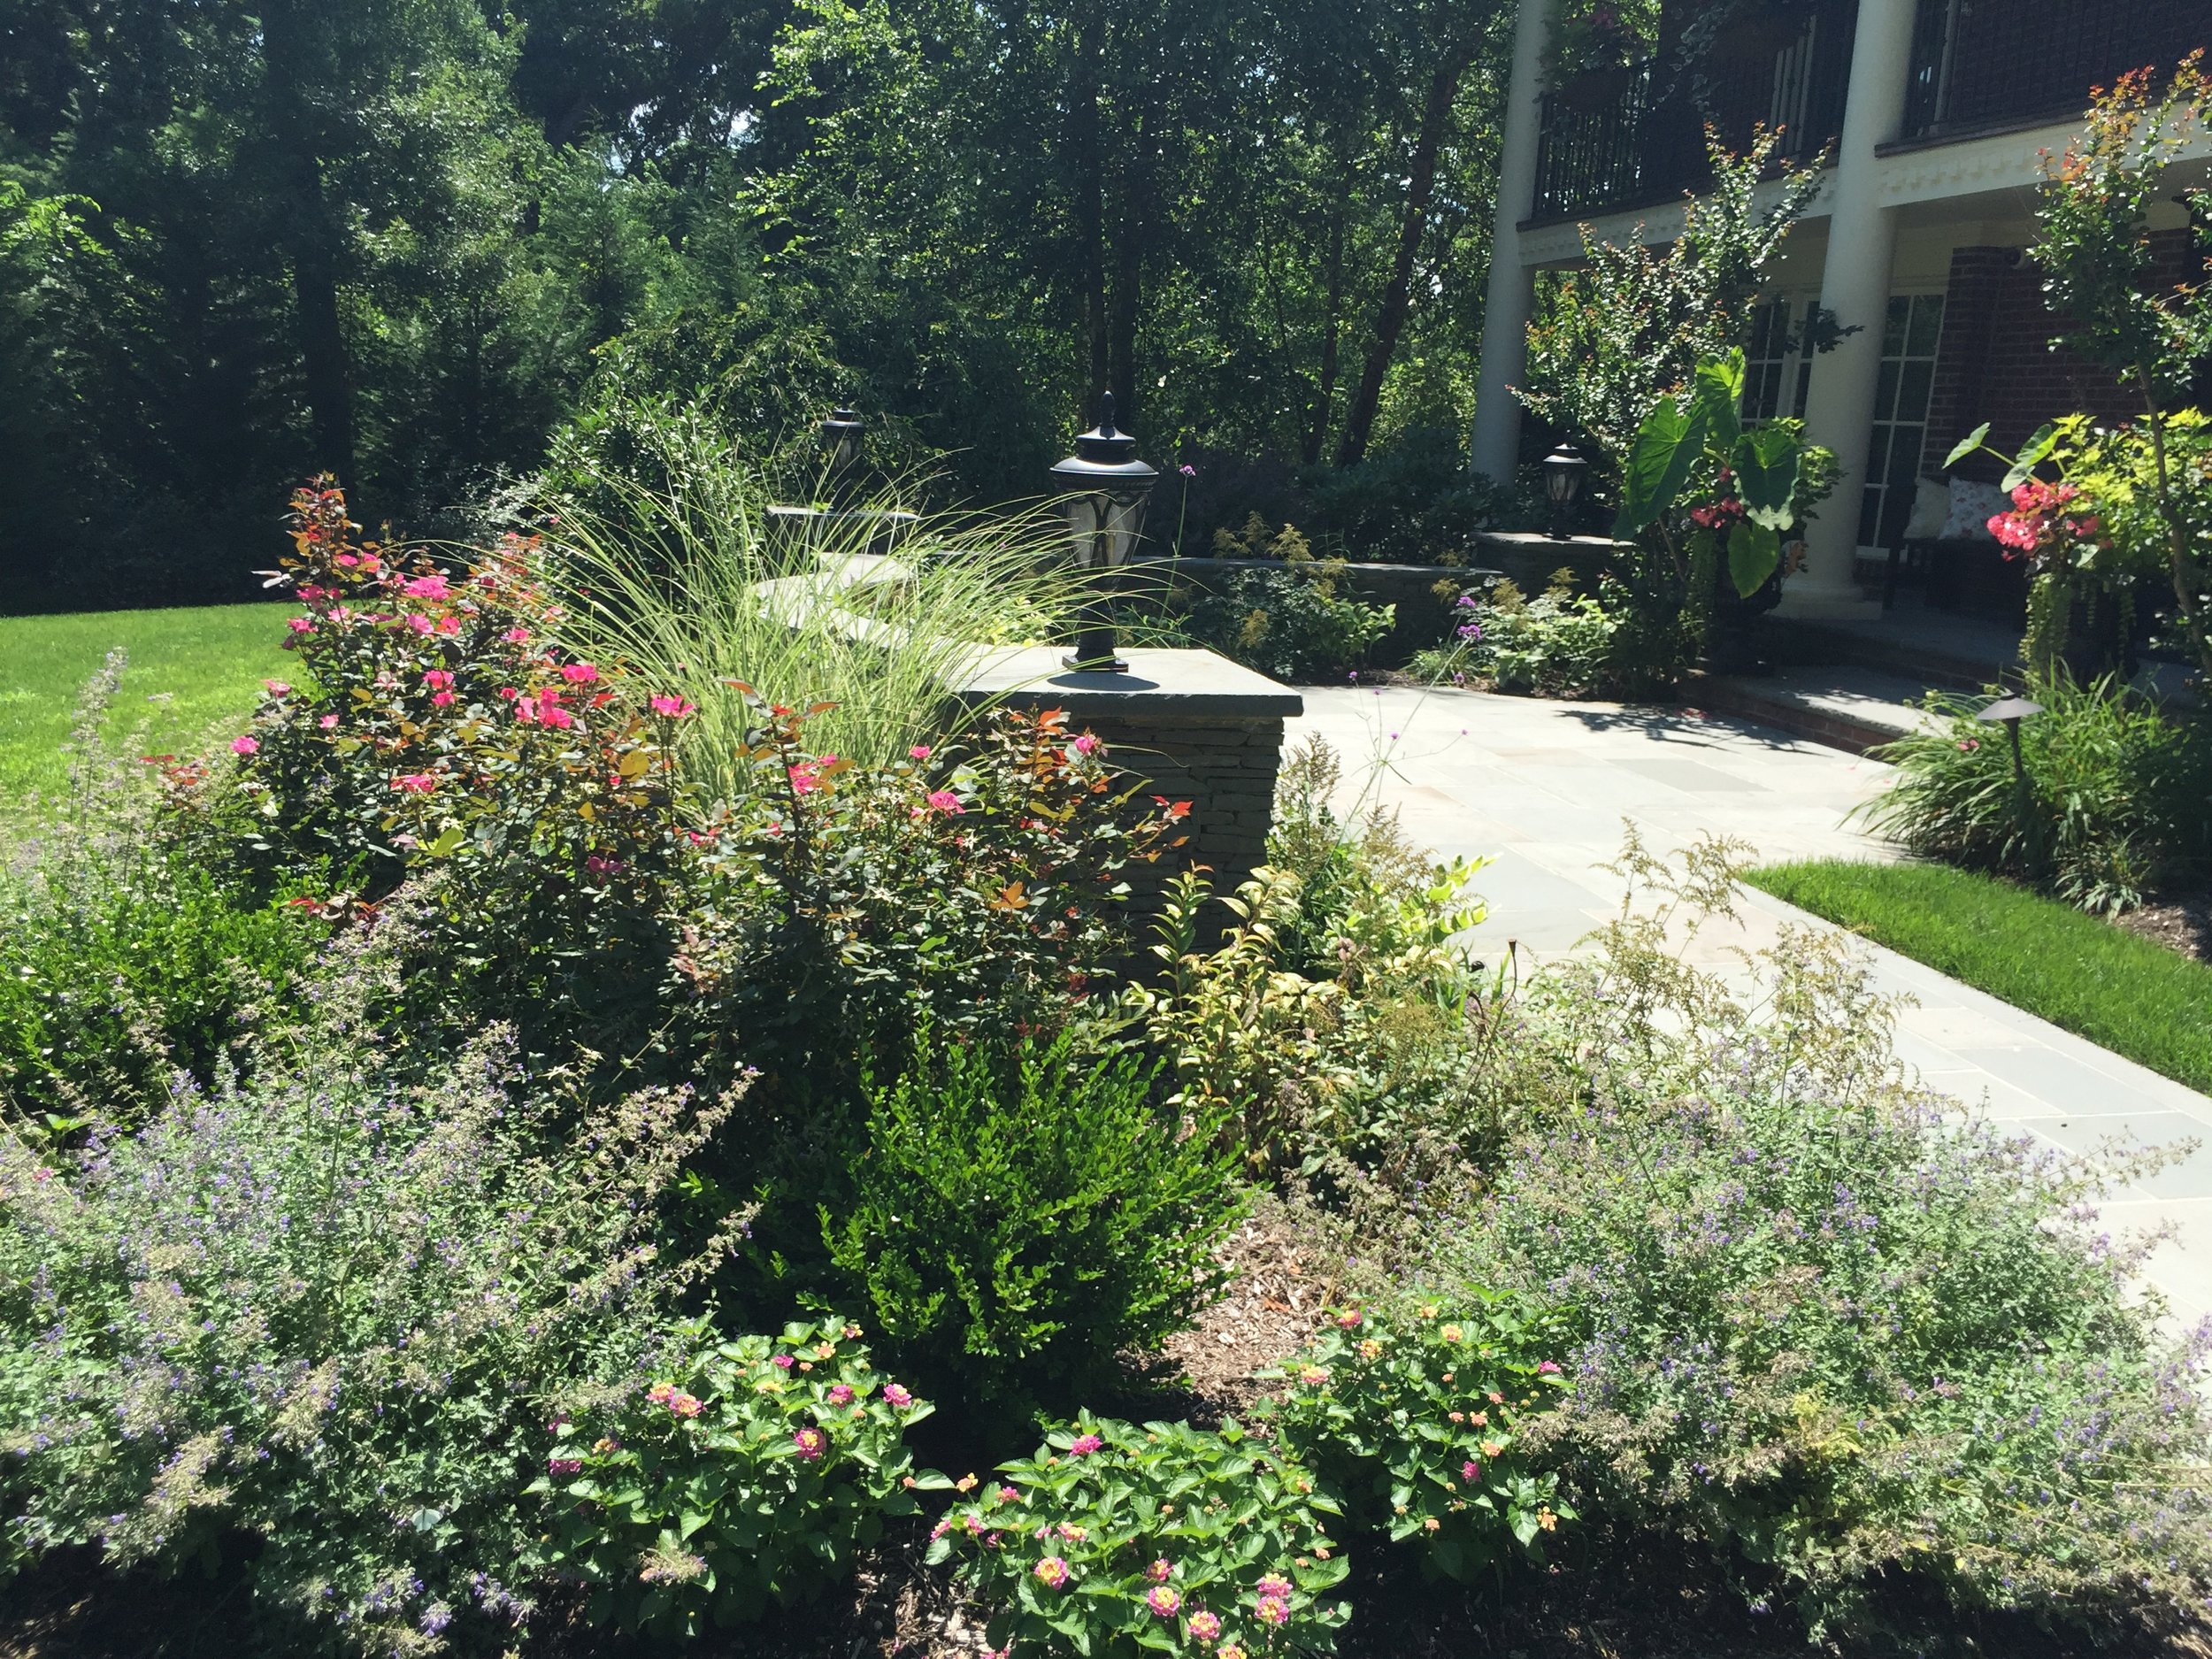 Top landscape architecture with plantingsin Long Island, NY